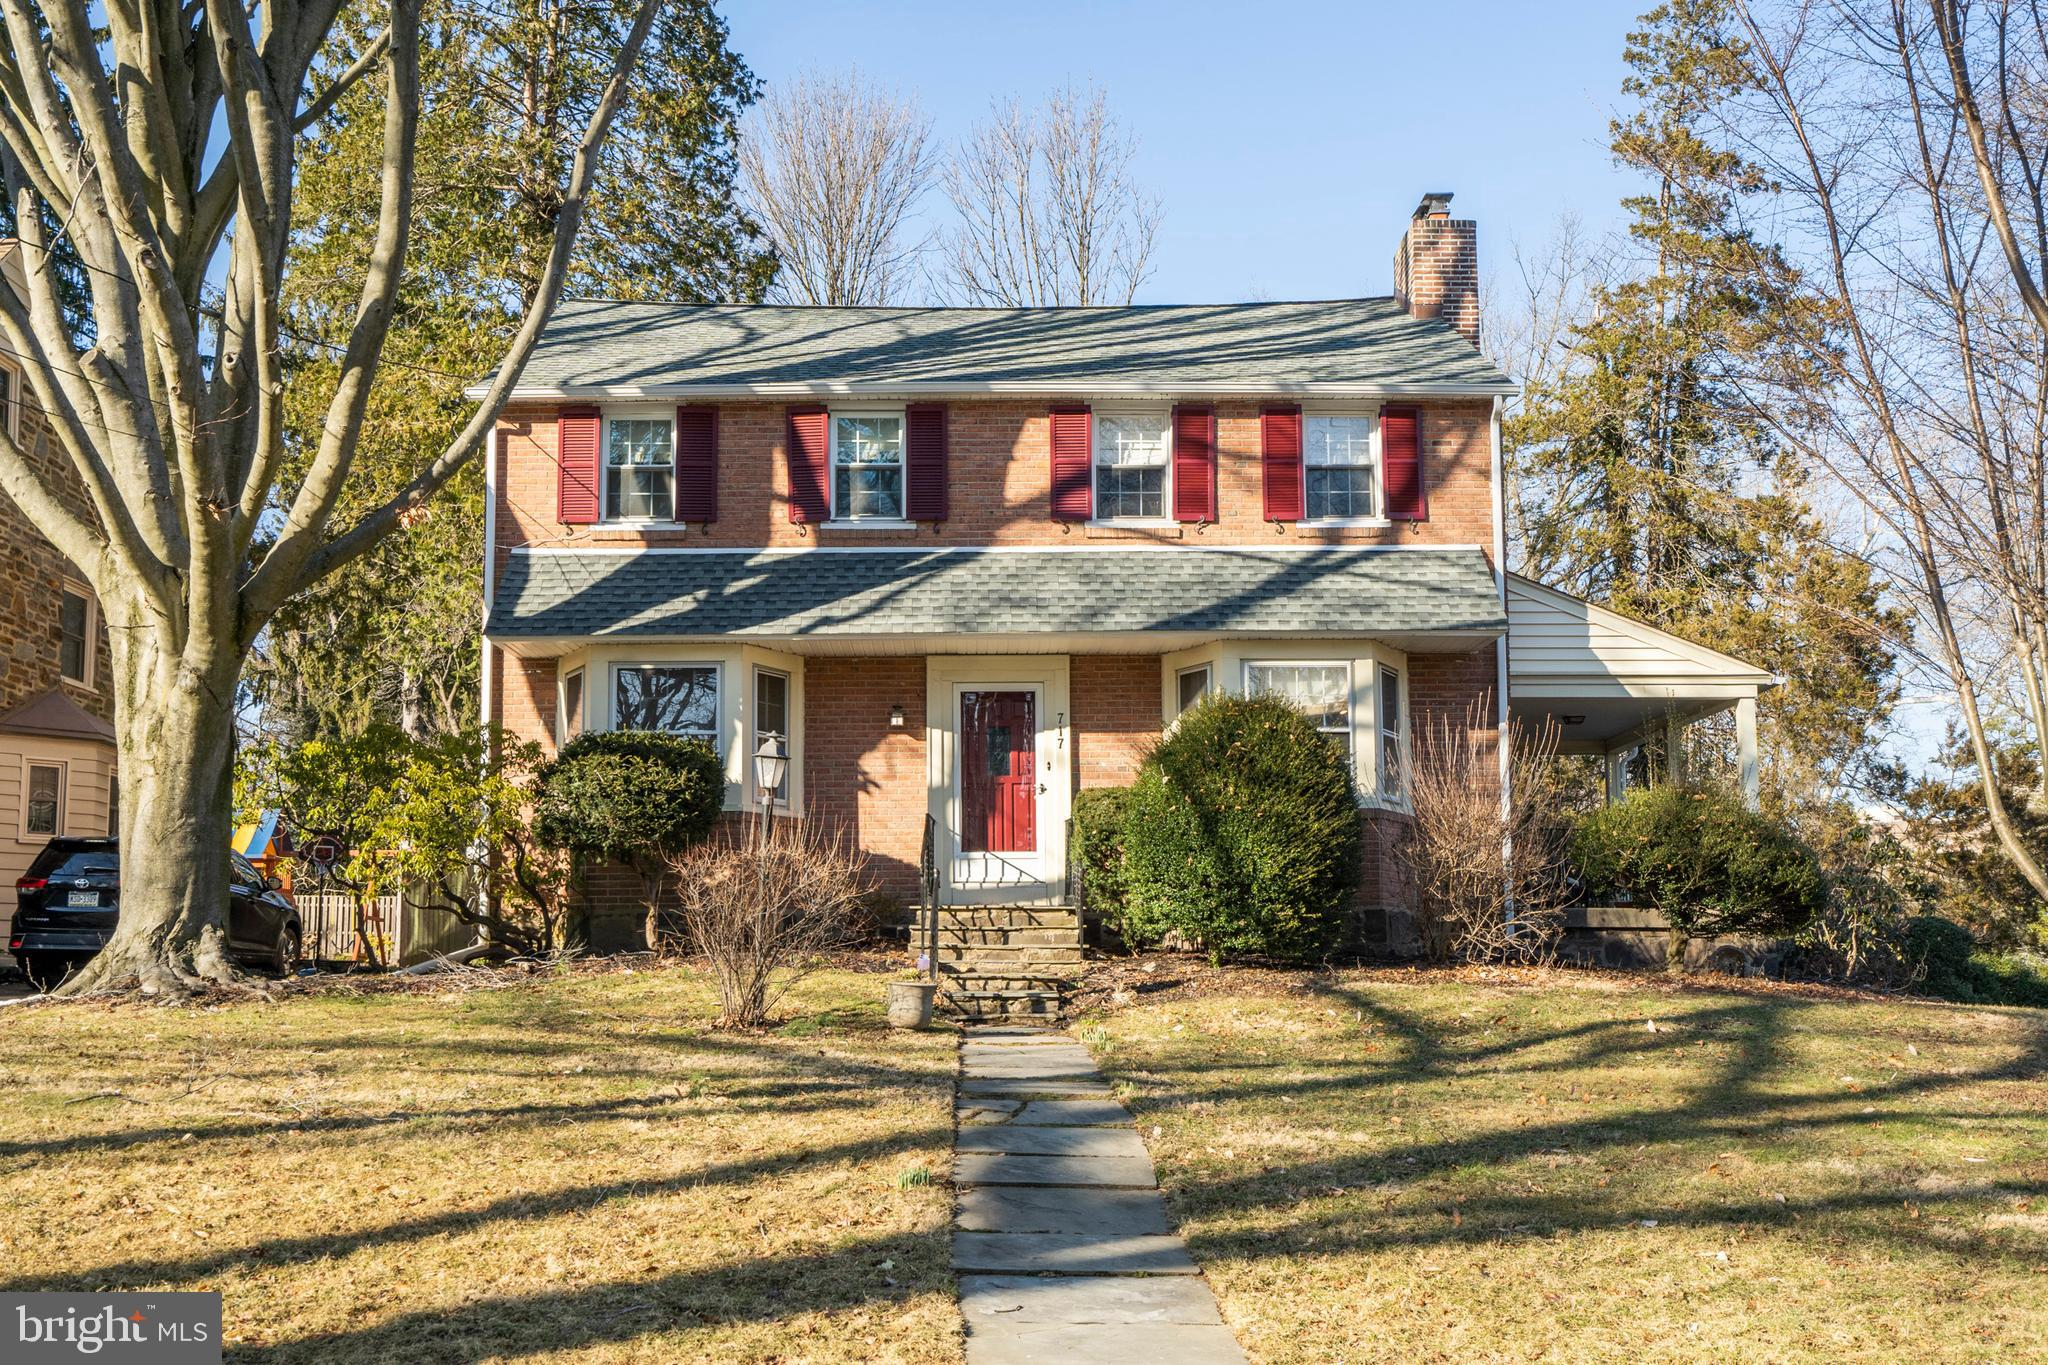 717 SUSSEX ROAD, WYNNEWOOD, PA 19096